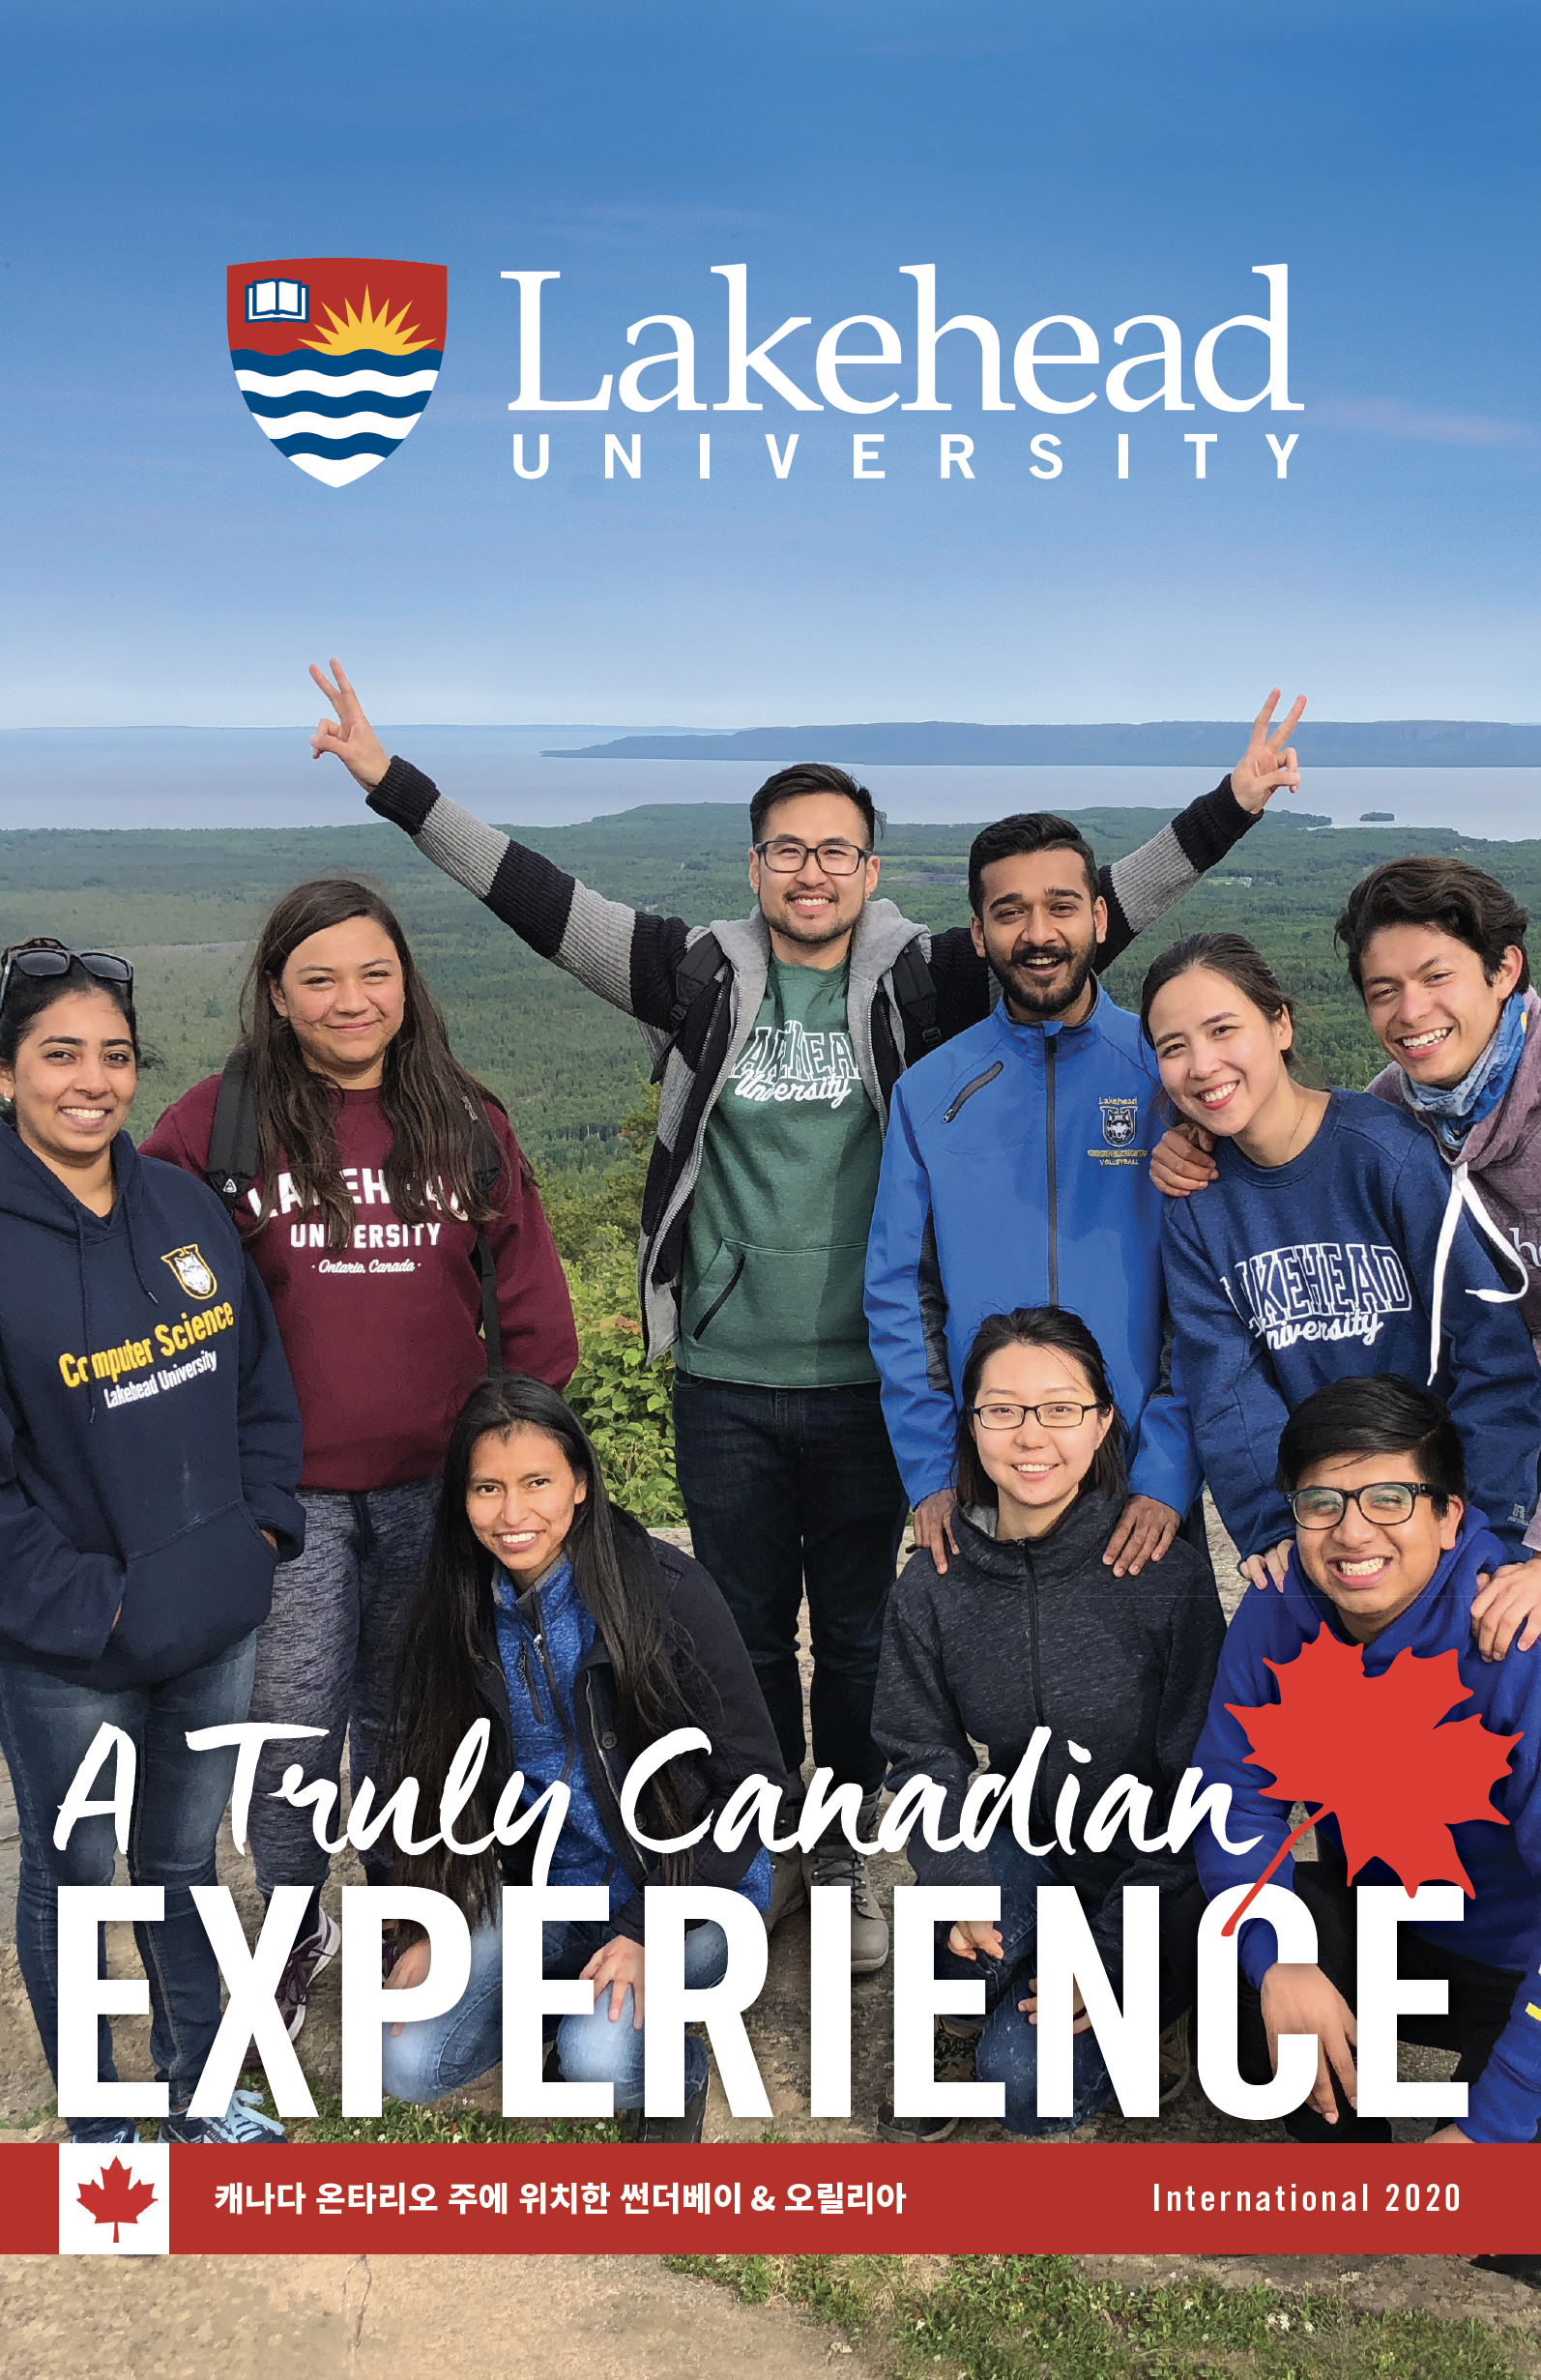 The cover of the 2019 Lakehead International Brochure in Korean.